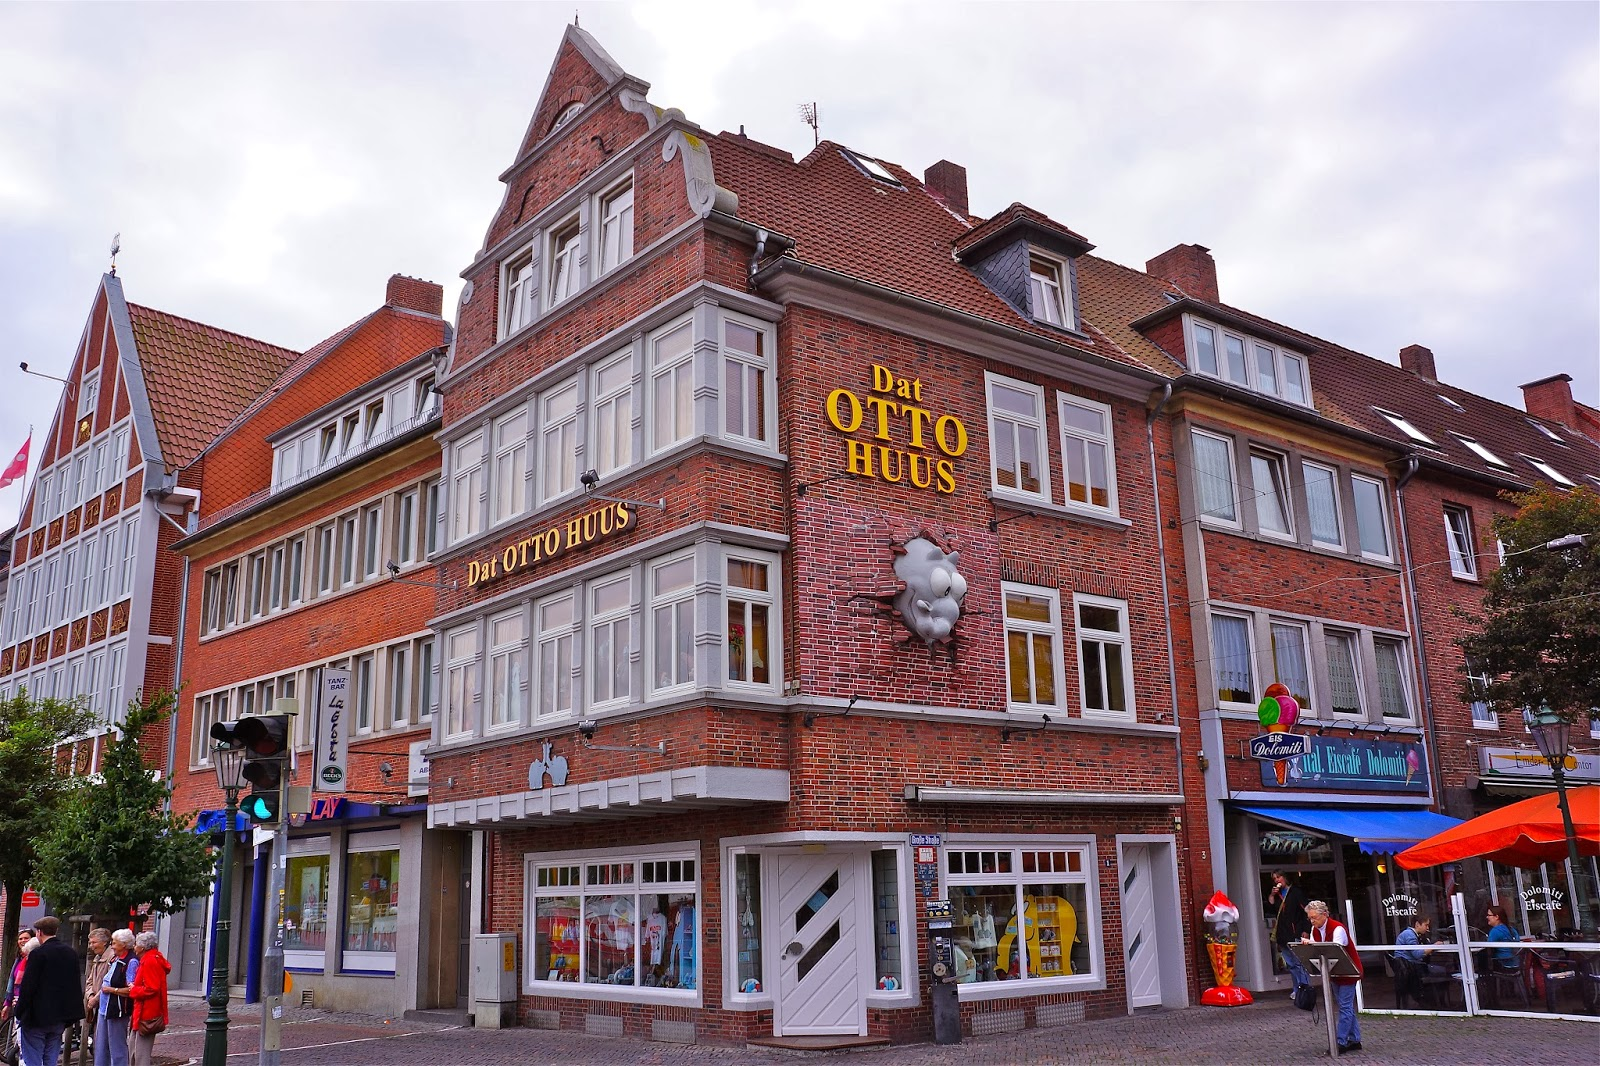 Picture of Dat Otto Huus in Emden, Germany.